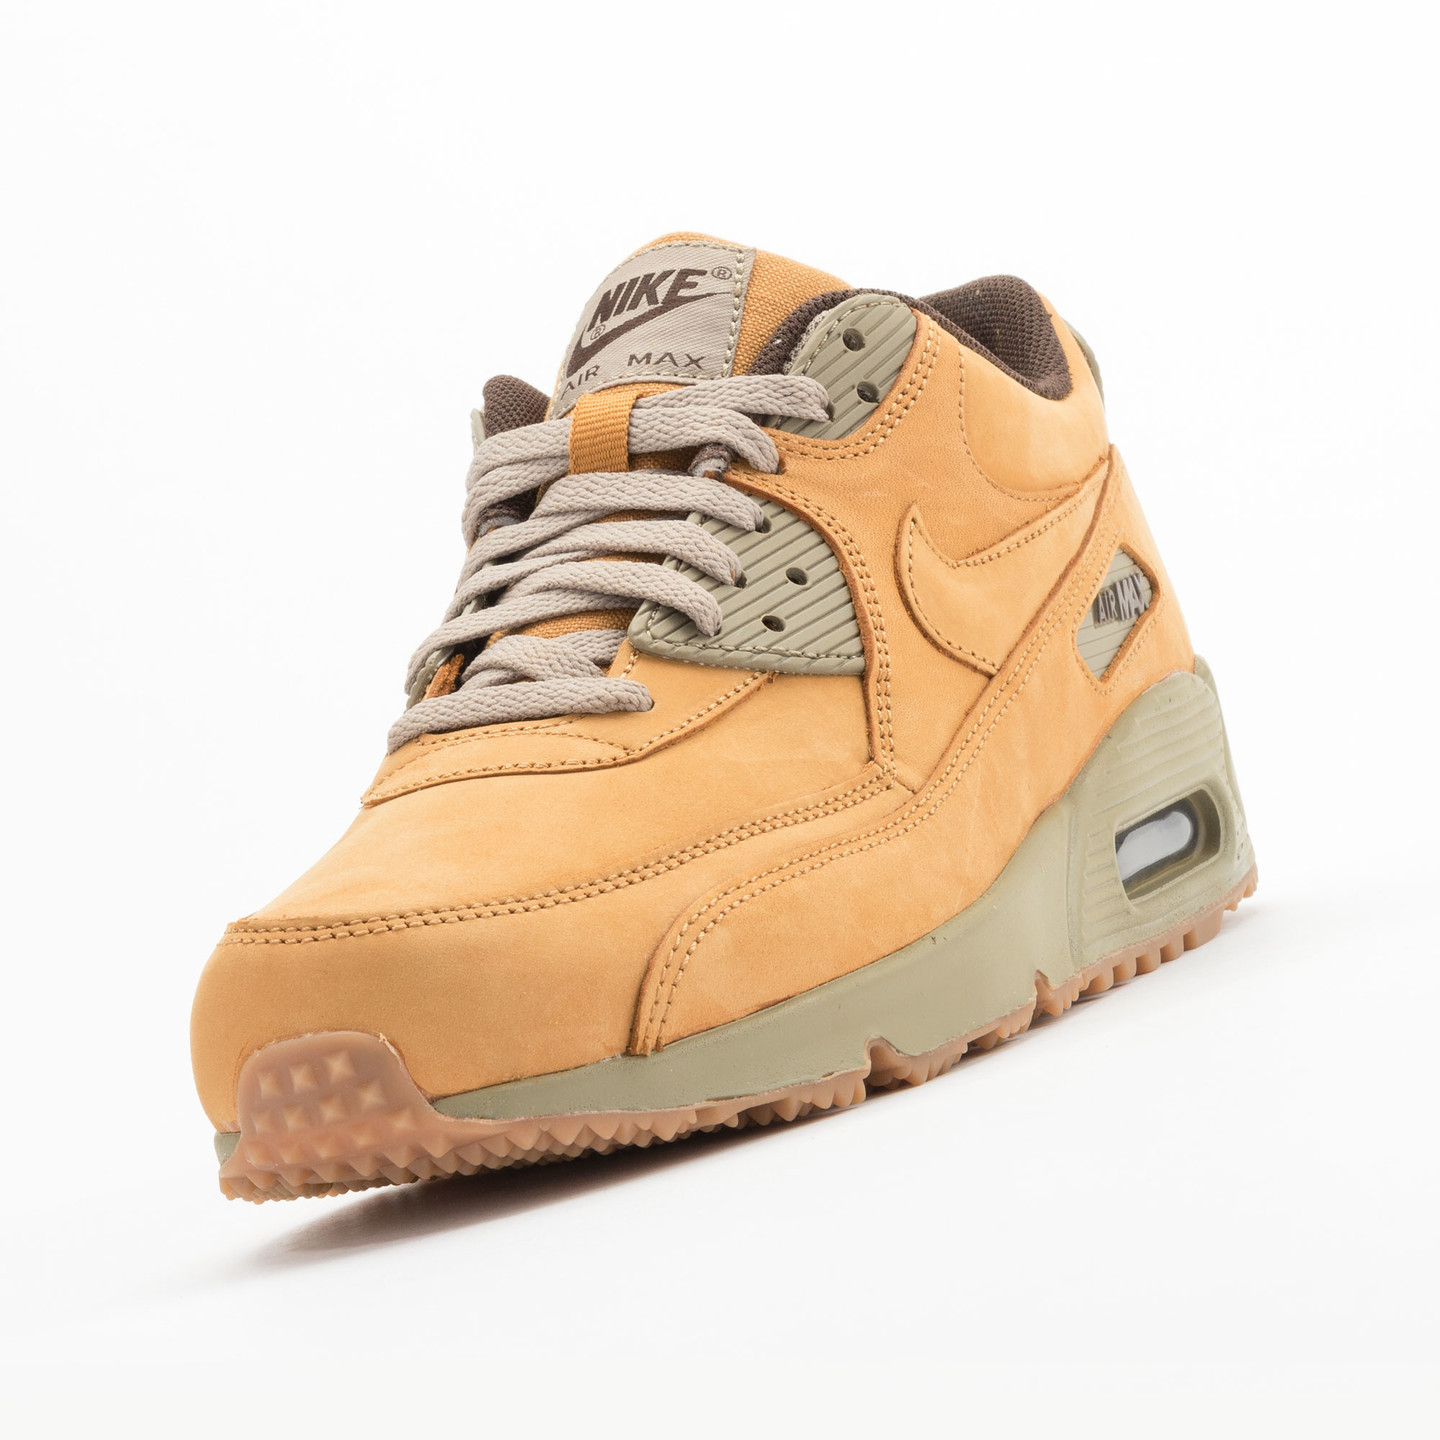 Nike Air Max 90 Winter Premium Bronze / Baroque Brown 683282-700-47